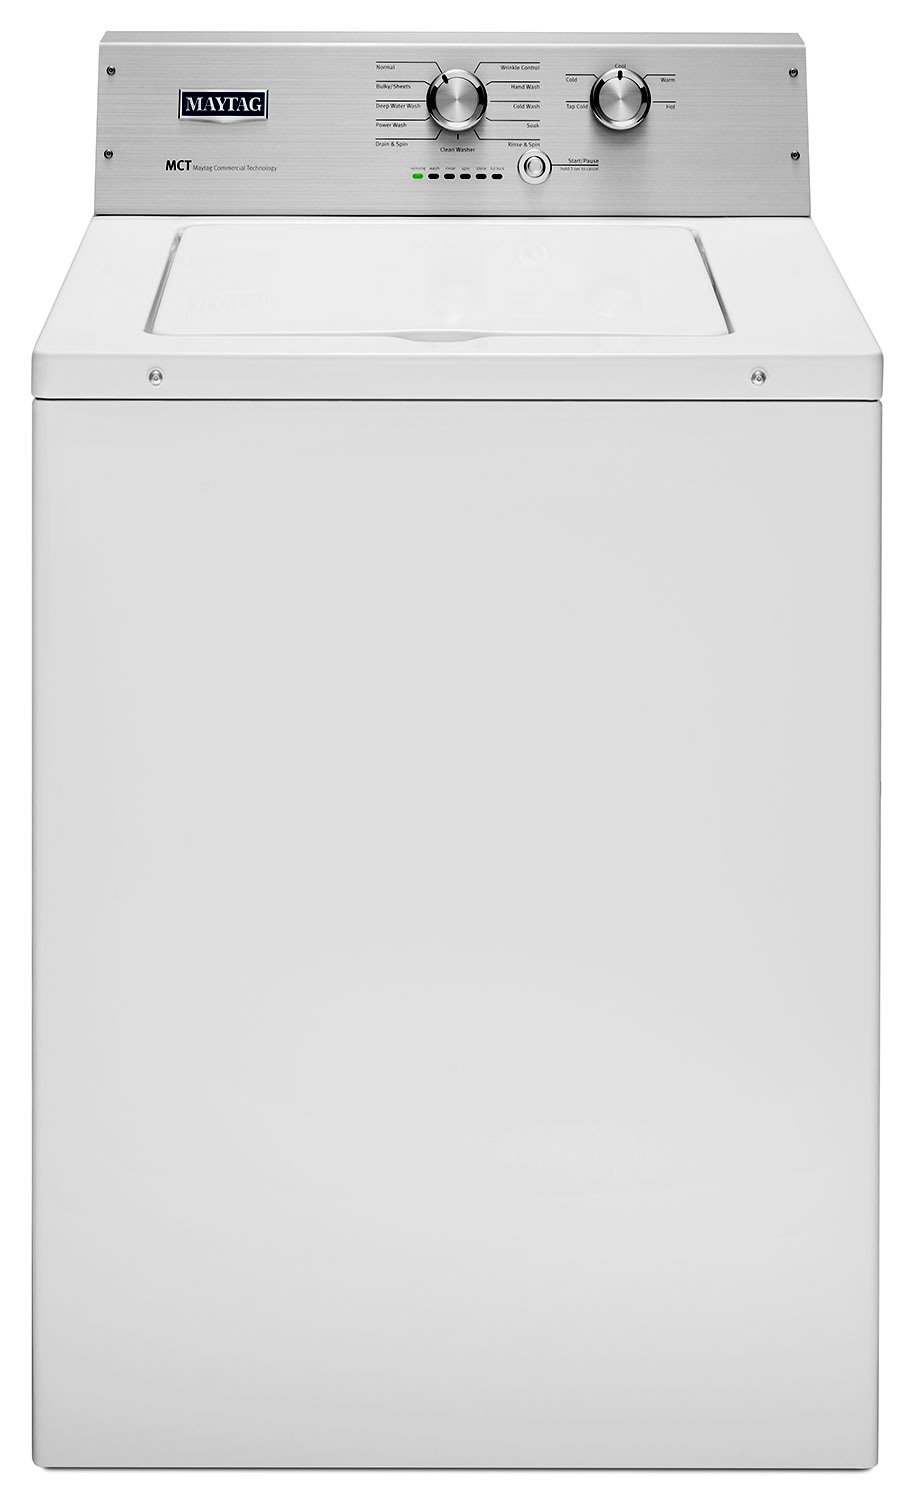 Washers and Dryers - Maytag White Top-Load Washer (4.2 Cu. Ft.) - MVWP475EW